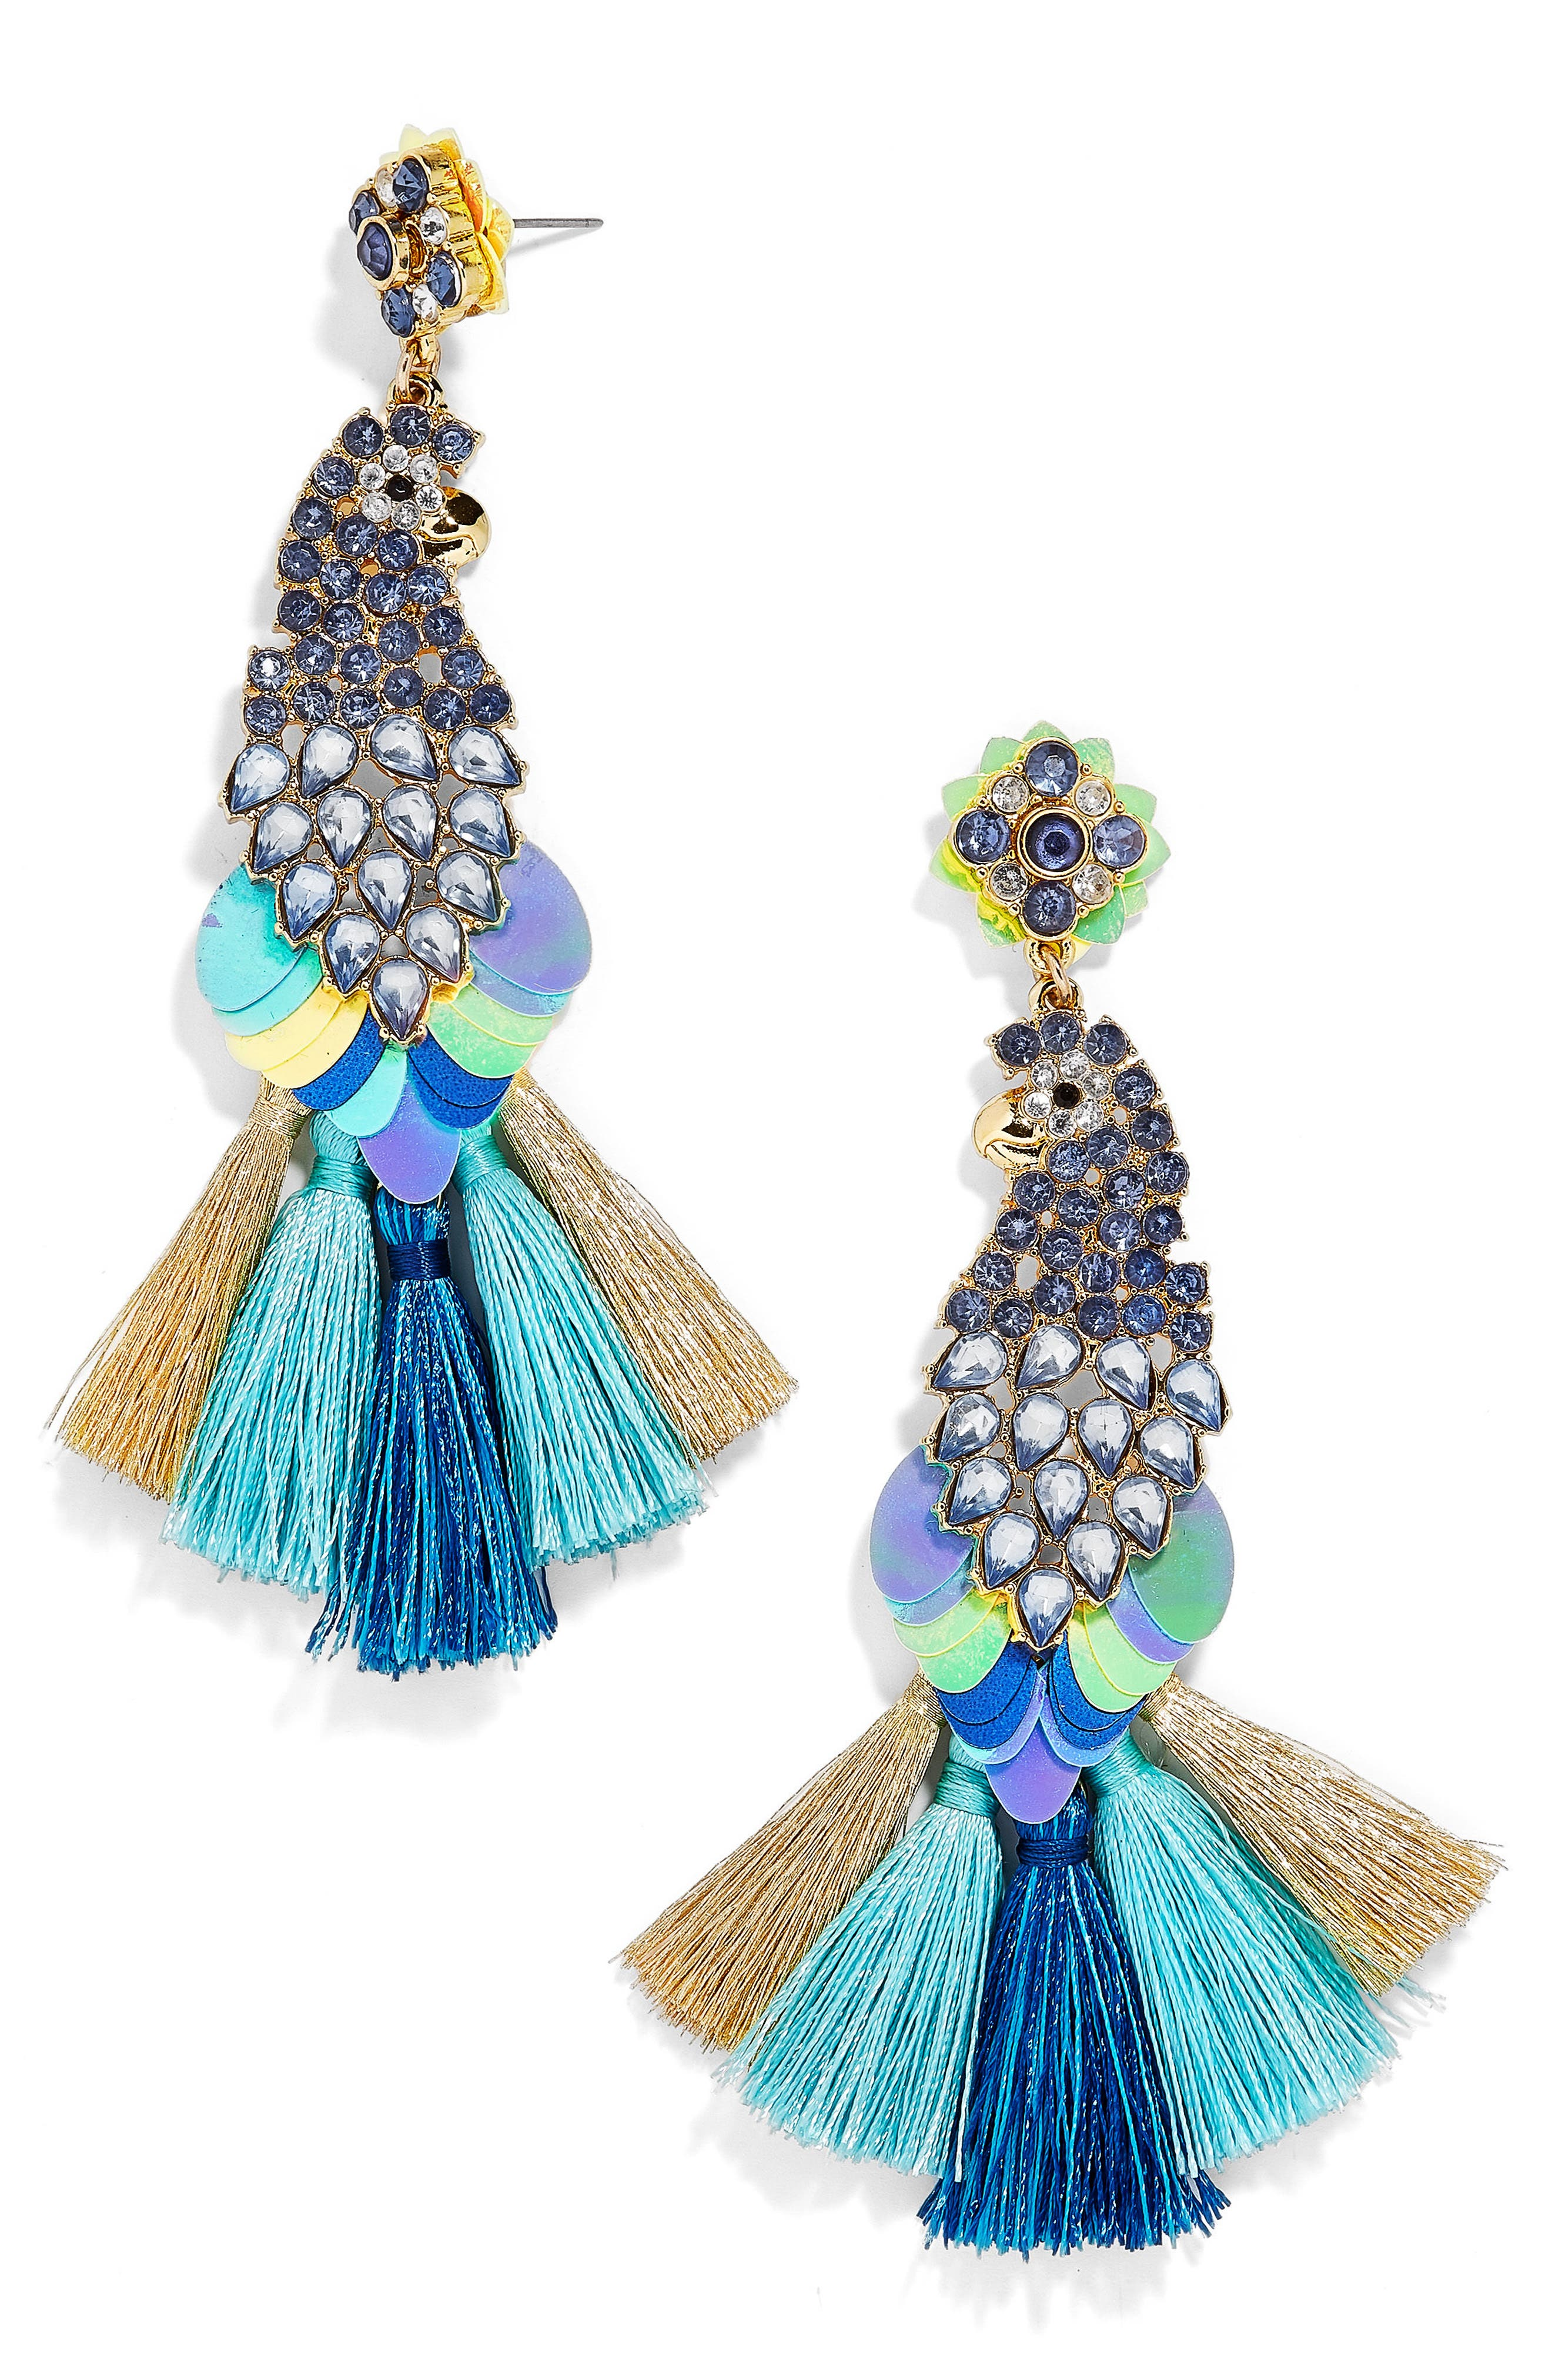 Macaw Statement Earrings,                         Main,                         color, Blue